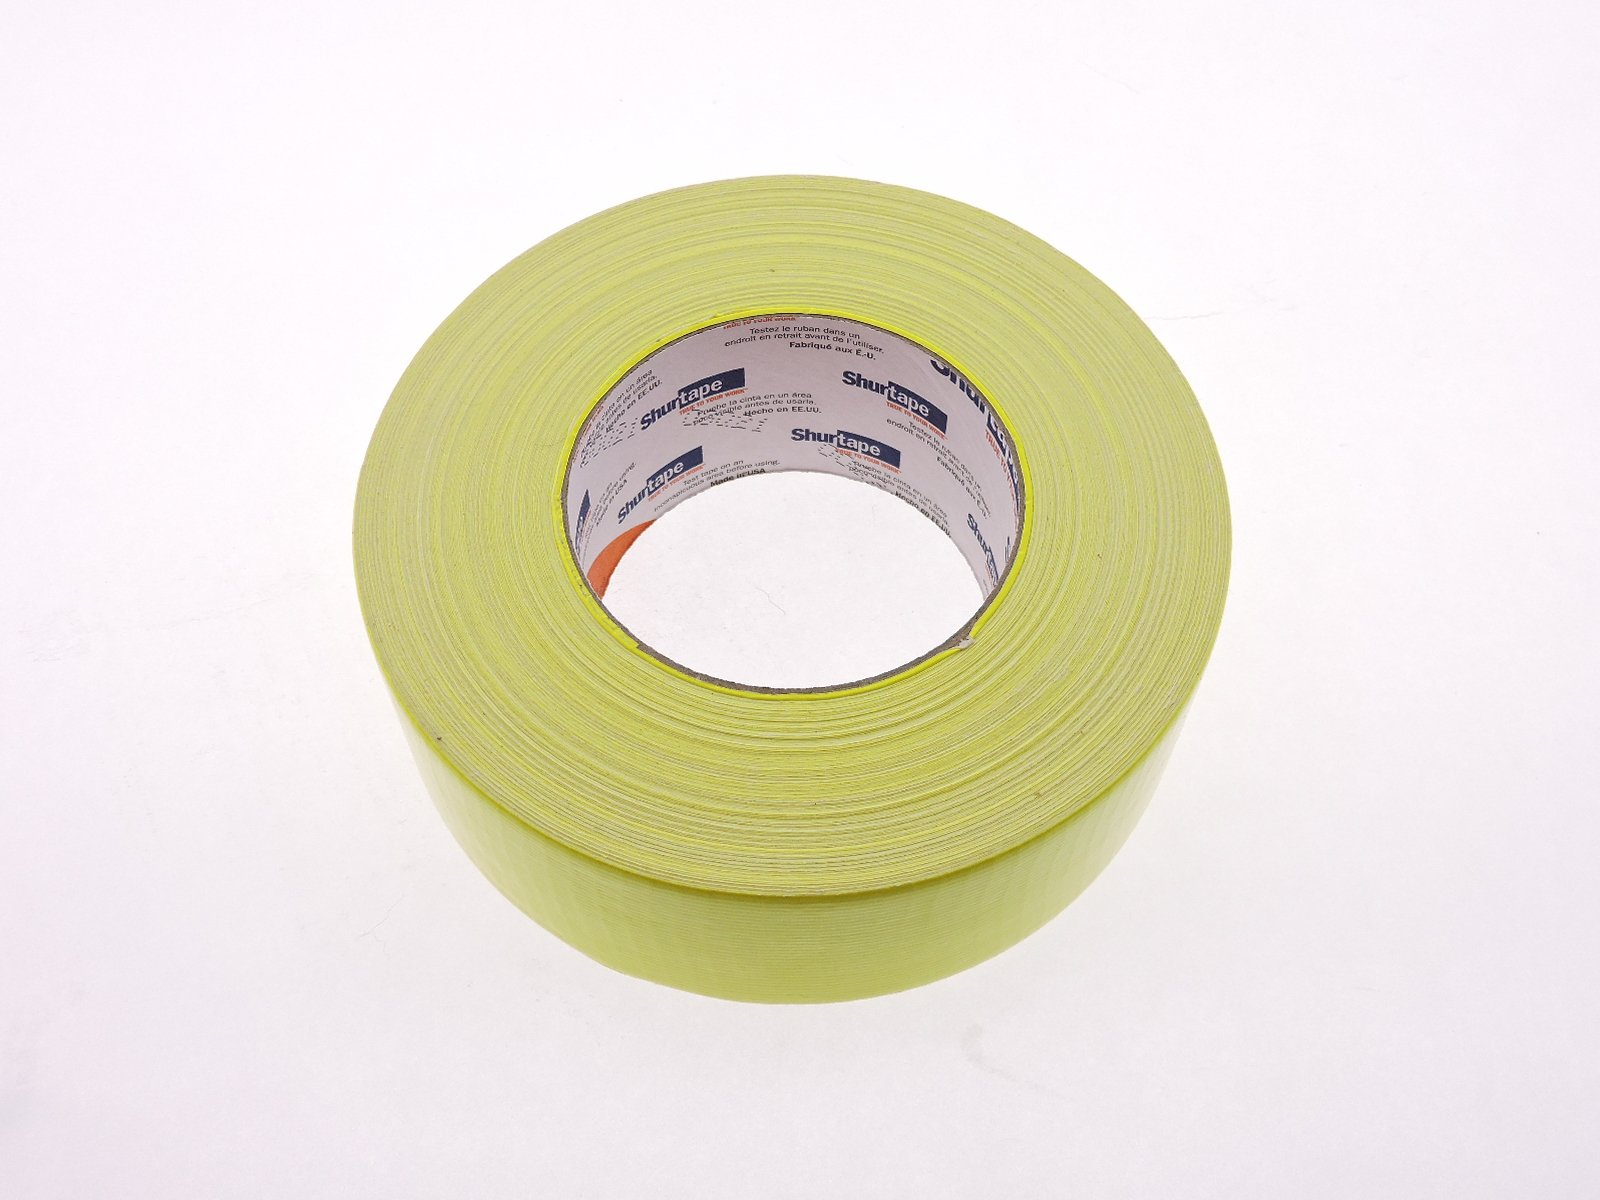 PC-619 Shurtape 2'' Yellow Bright Fluorescent Neon Colored 9 Mil Cloth Duct Tape Water UV Tear Resistant 60yd USA Made Colors High Visibility Safety Warning Marking by Shurtape (Image #2)